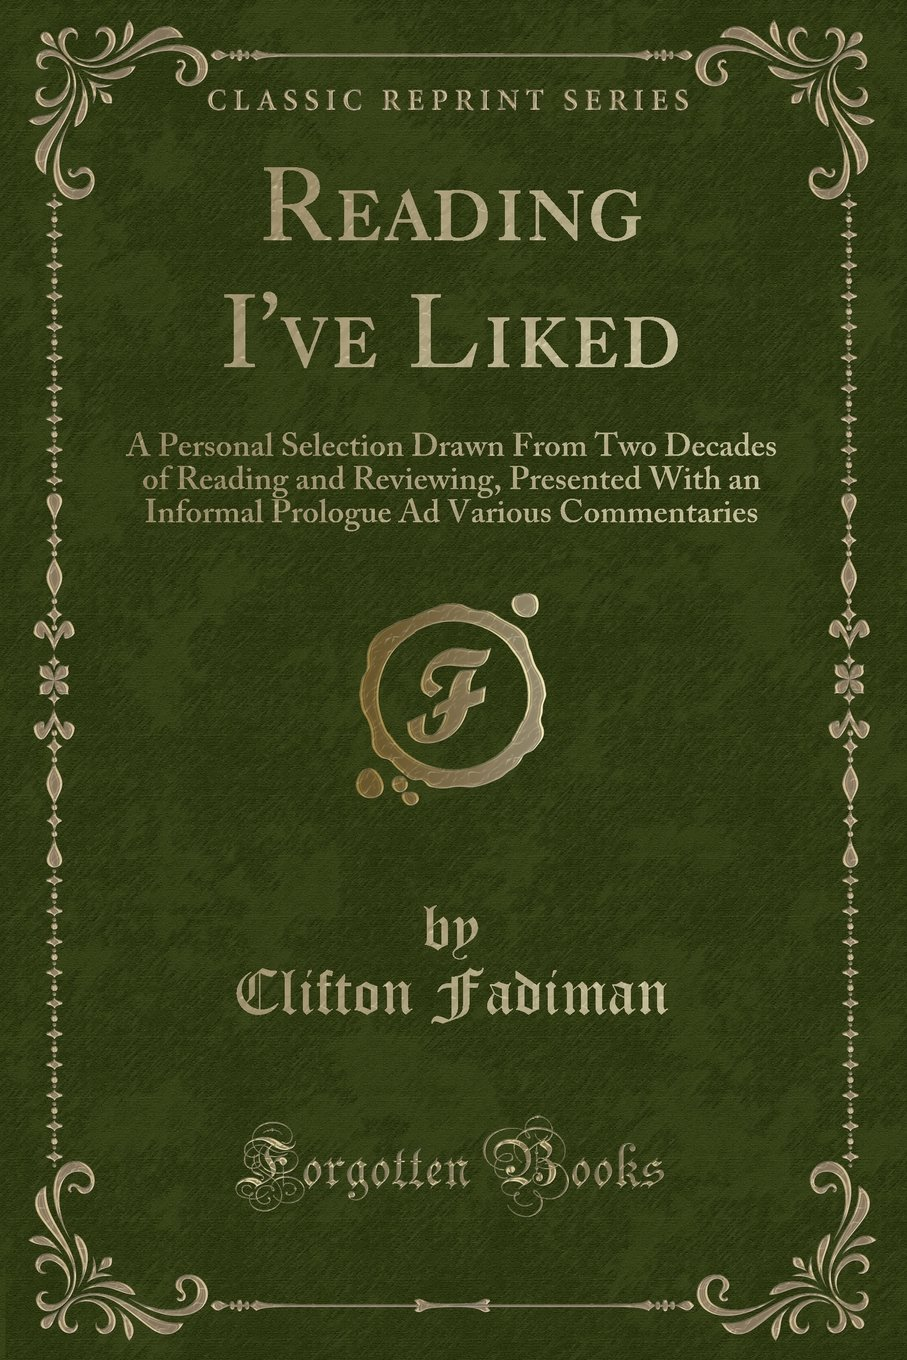 Download Reading I've Liked: A Personal Selection Drawn From Two Decades of Reading and Reviewing, Presented With an Informal Prologue Ad Various Commentaries (Classic Reprint) PDF